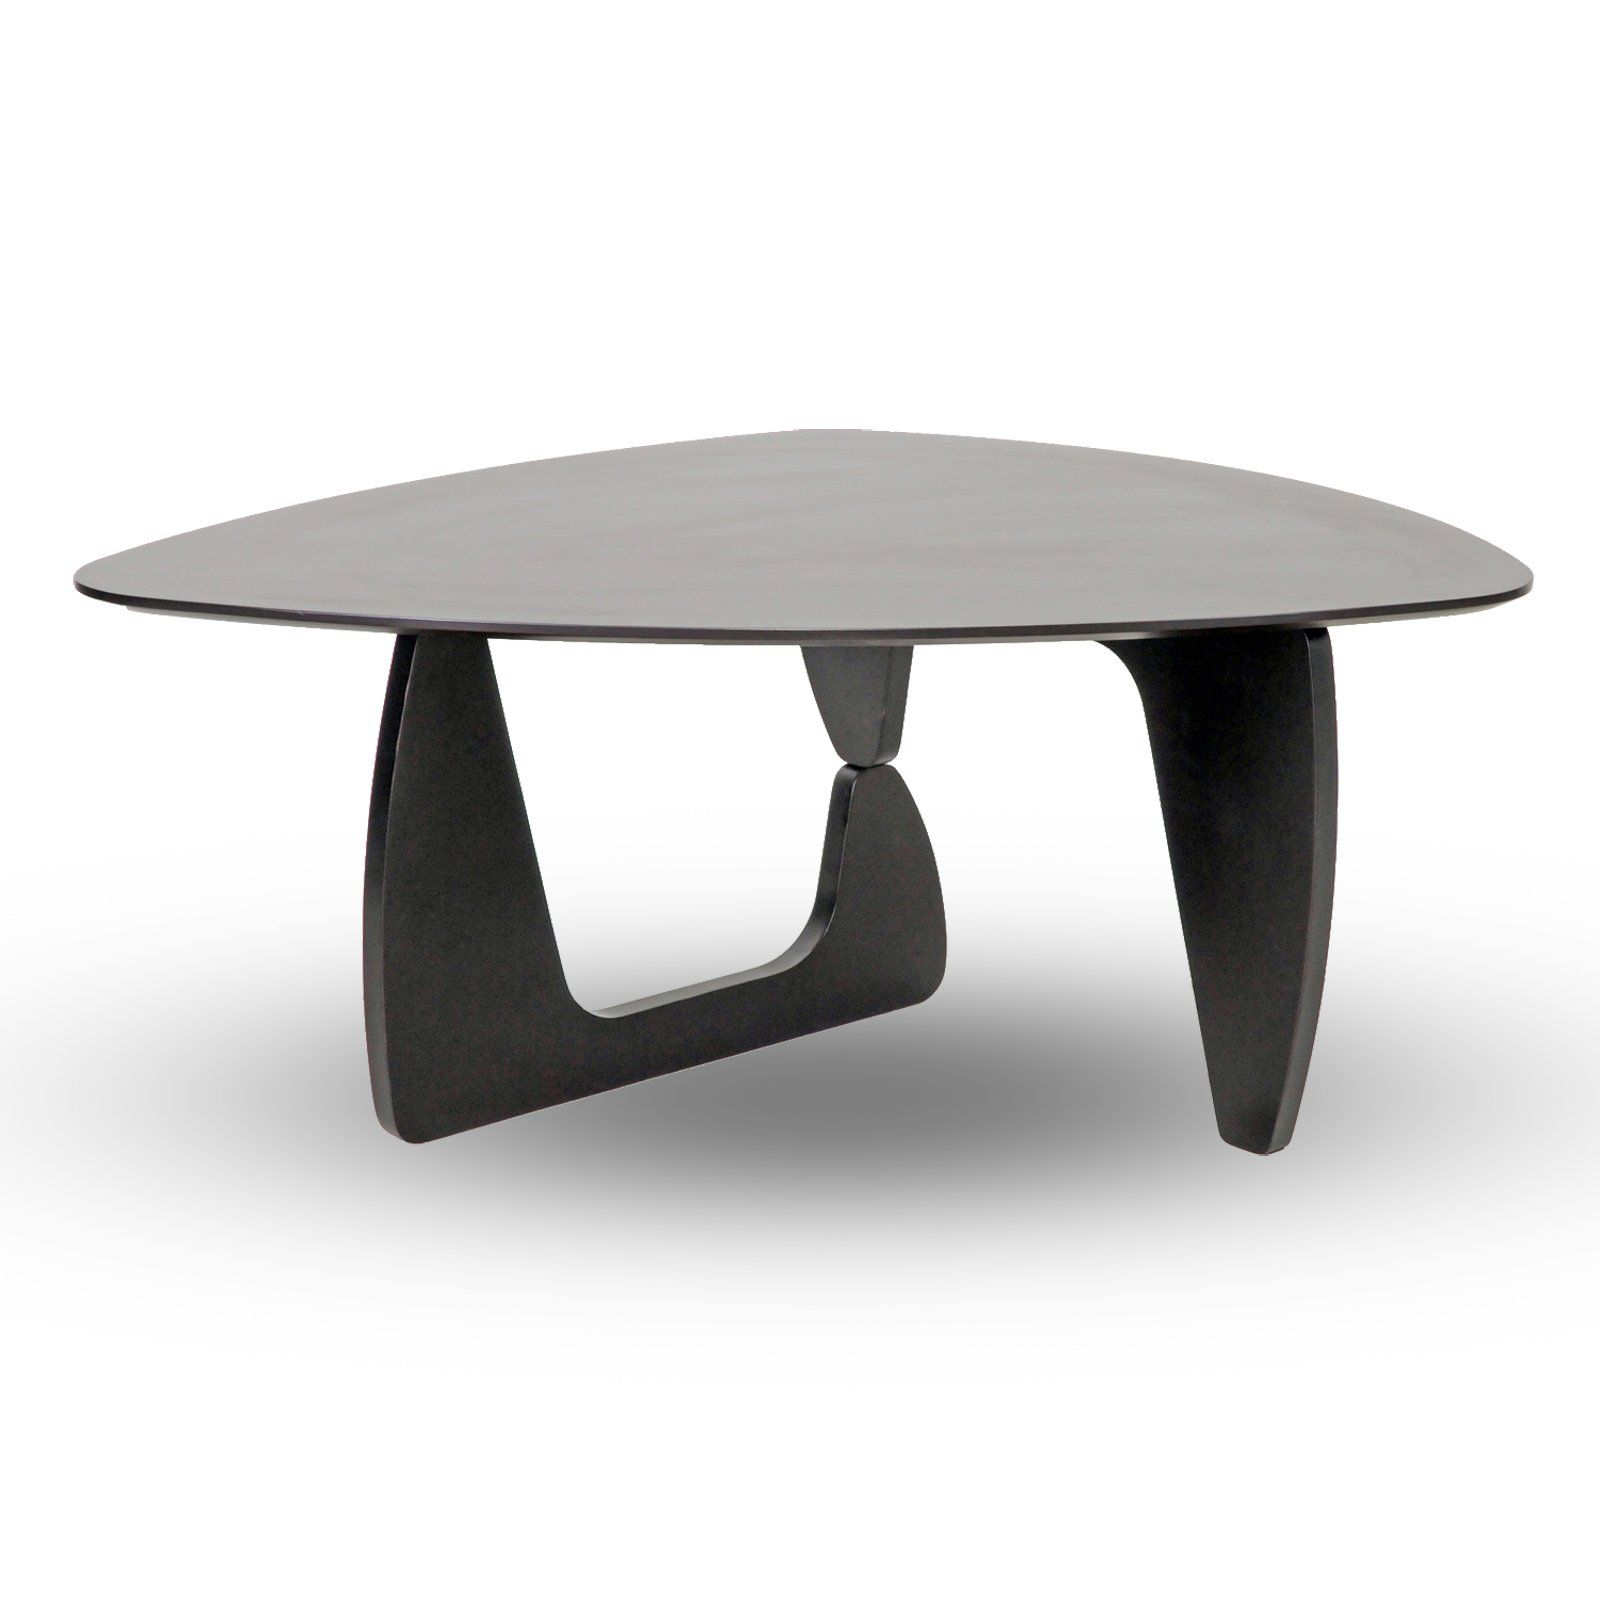 Hazelnut Coffee Table At The Foundary 147 00 Yes Yes Always Yes Coffee Table Modern Coffee Tables Affordable Modern Furniture [ 1600 x 1600 Pixel ]